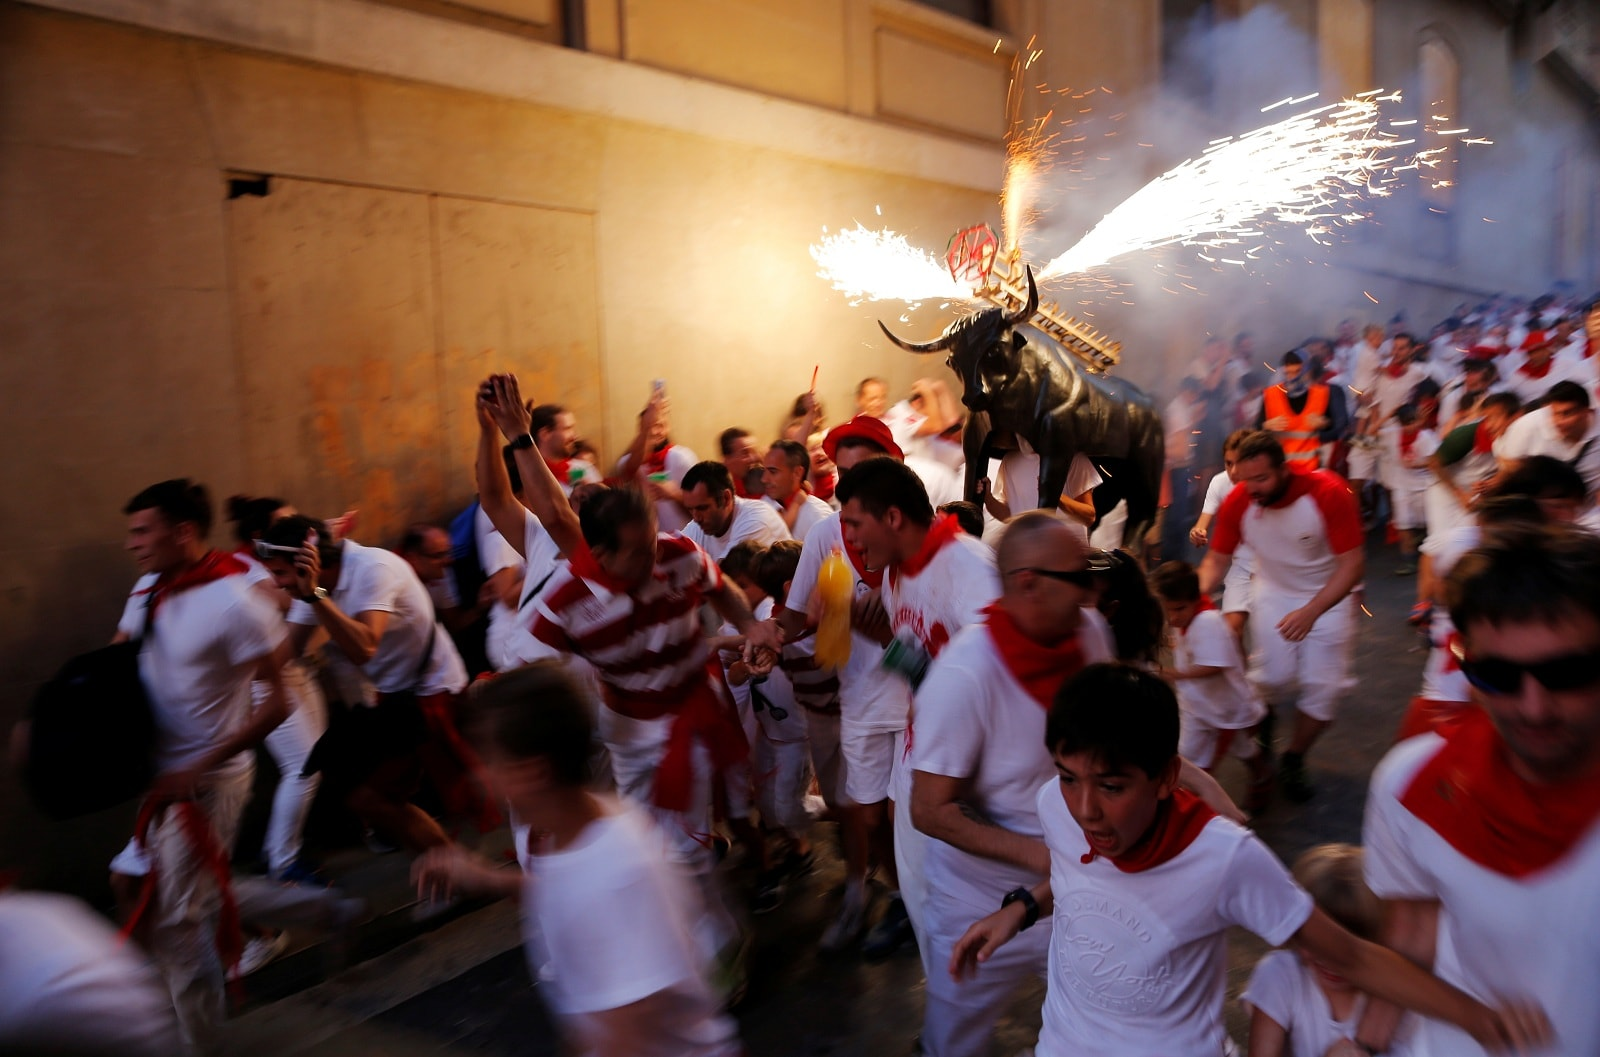 Revellers run next to the Fire Bull, a man carrying a bull figure packed with fireworks, during the San Fermin festival in Pamplona, Spain, July 7, 2019. REUTERS/Jon Nazca